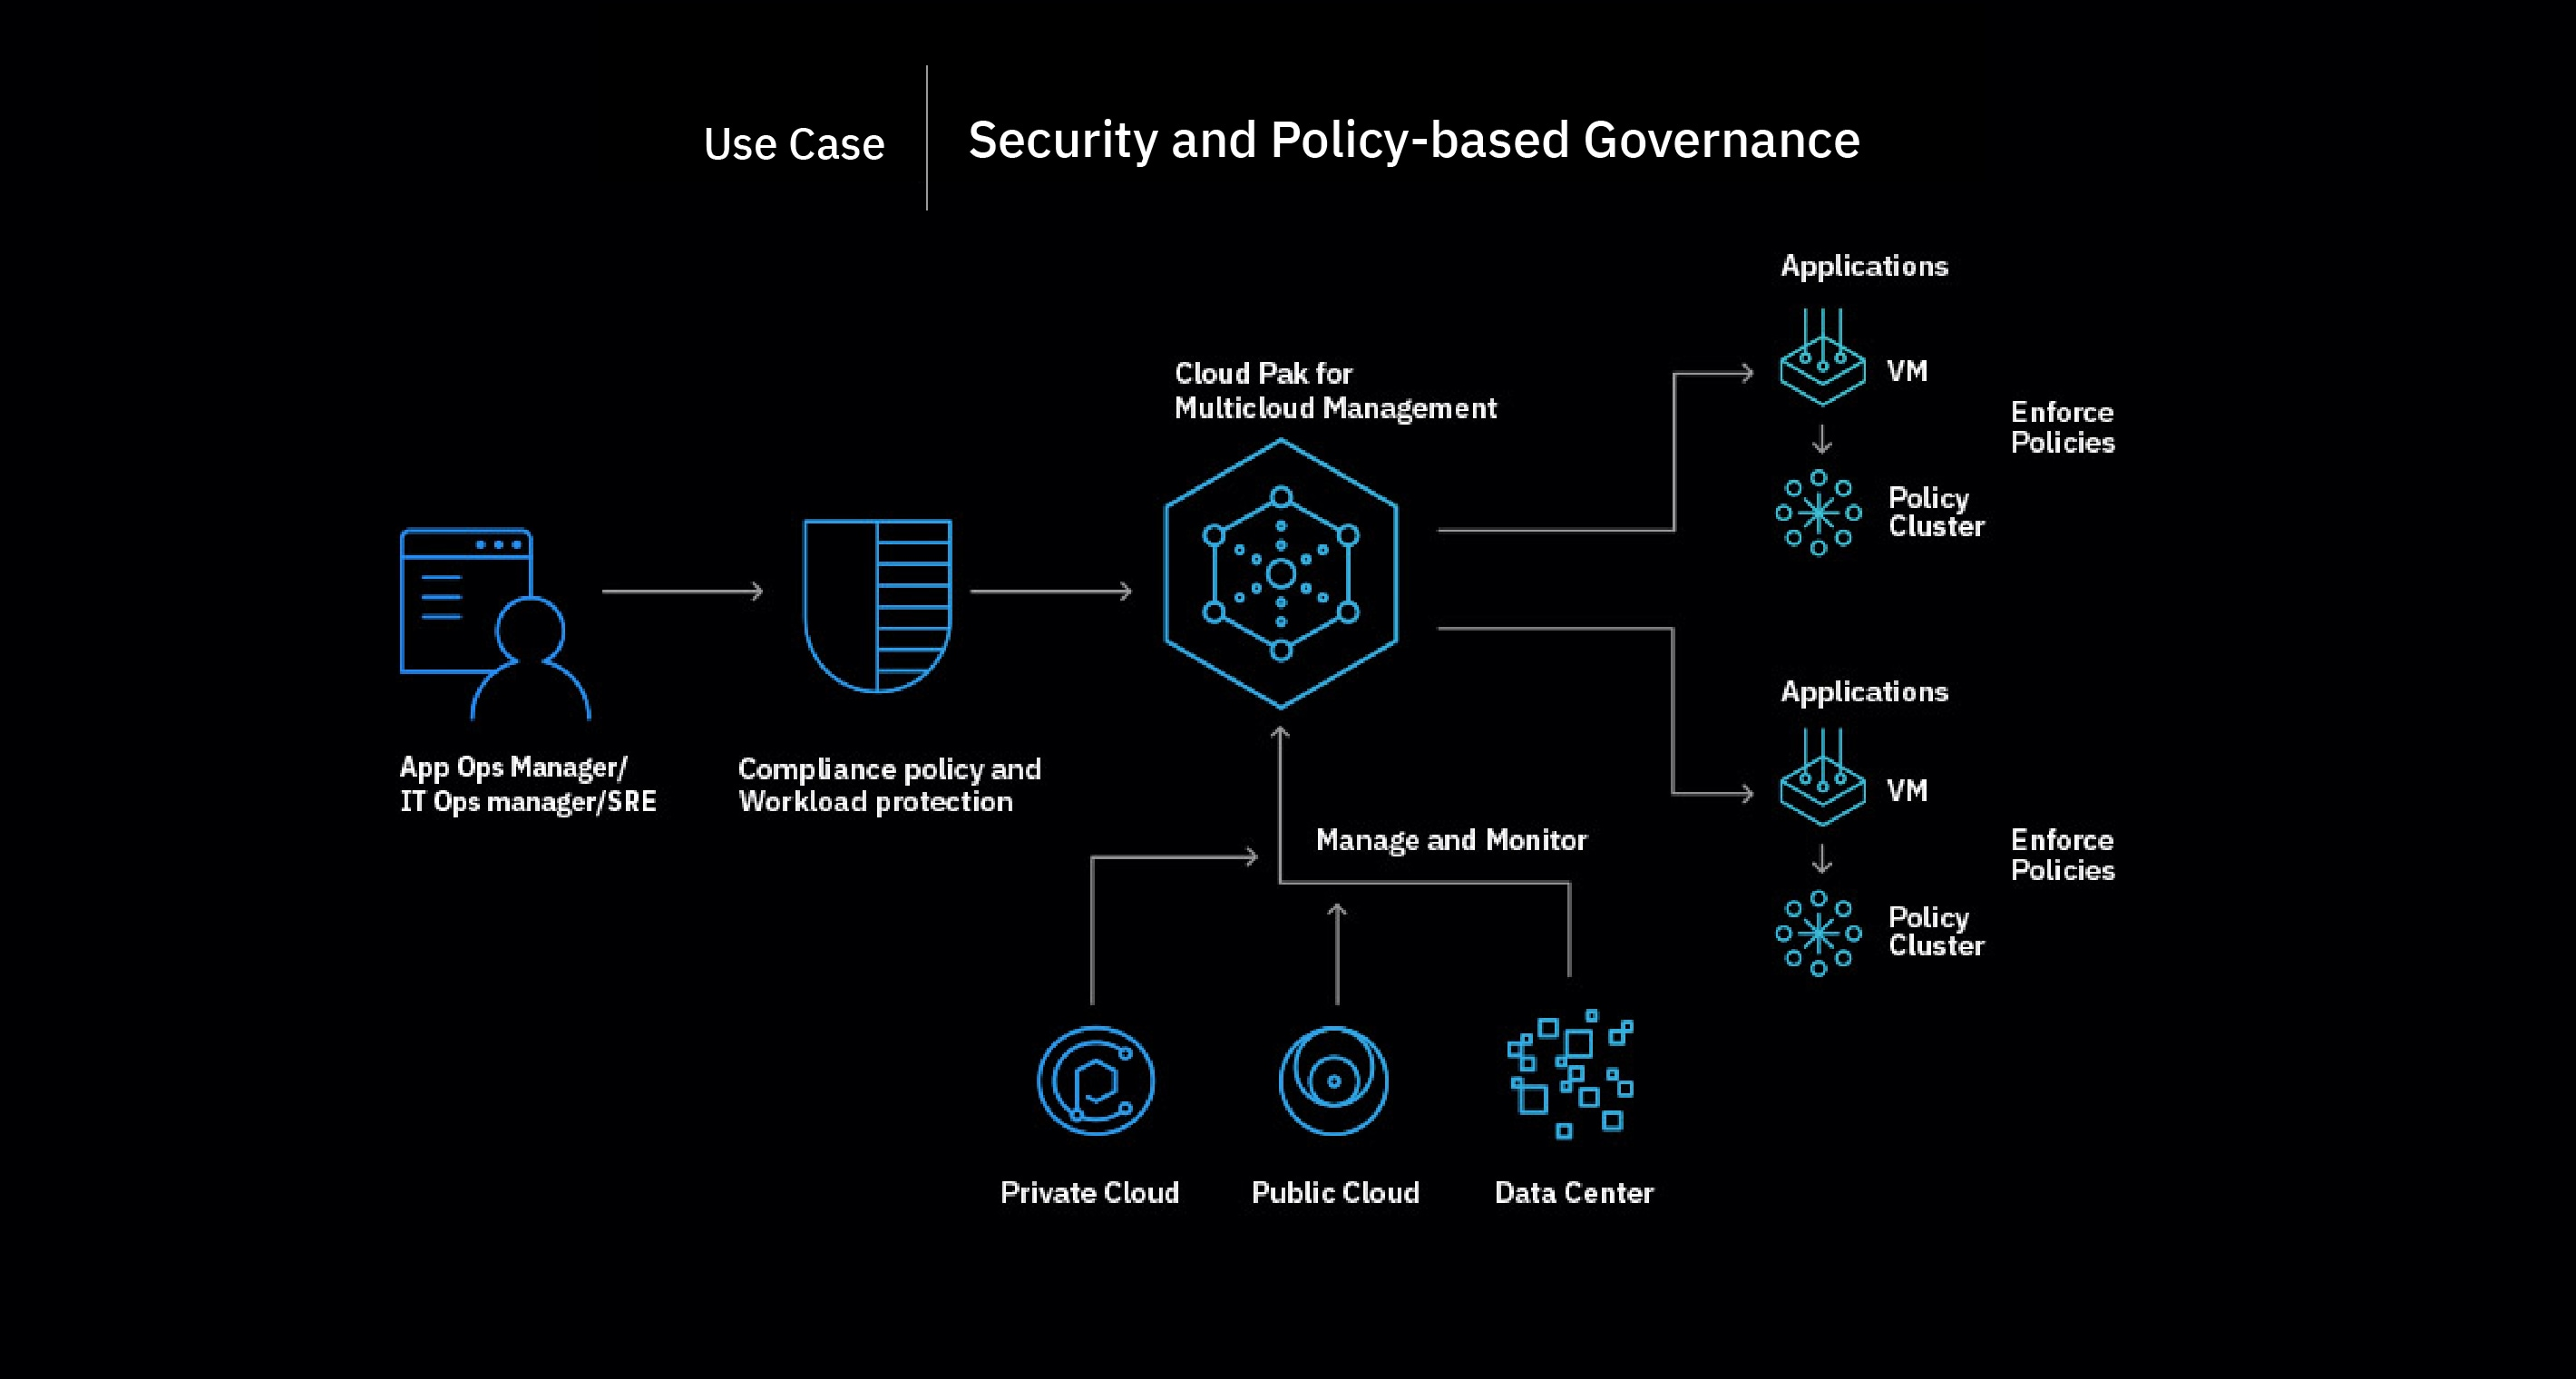 Flowchart showing the security and policy-based governance process